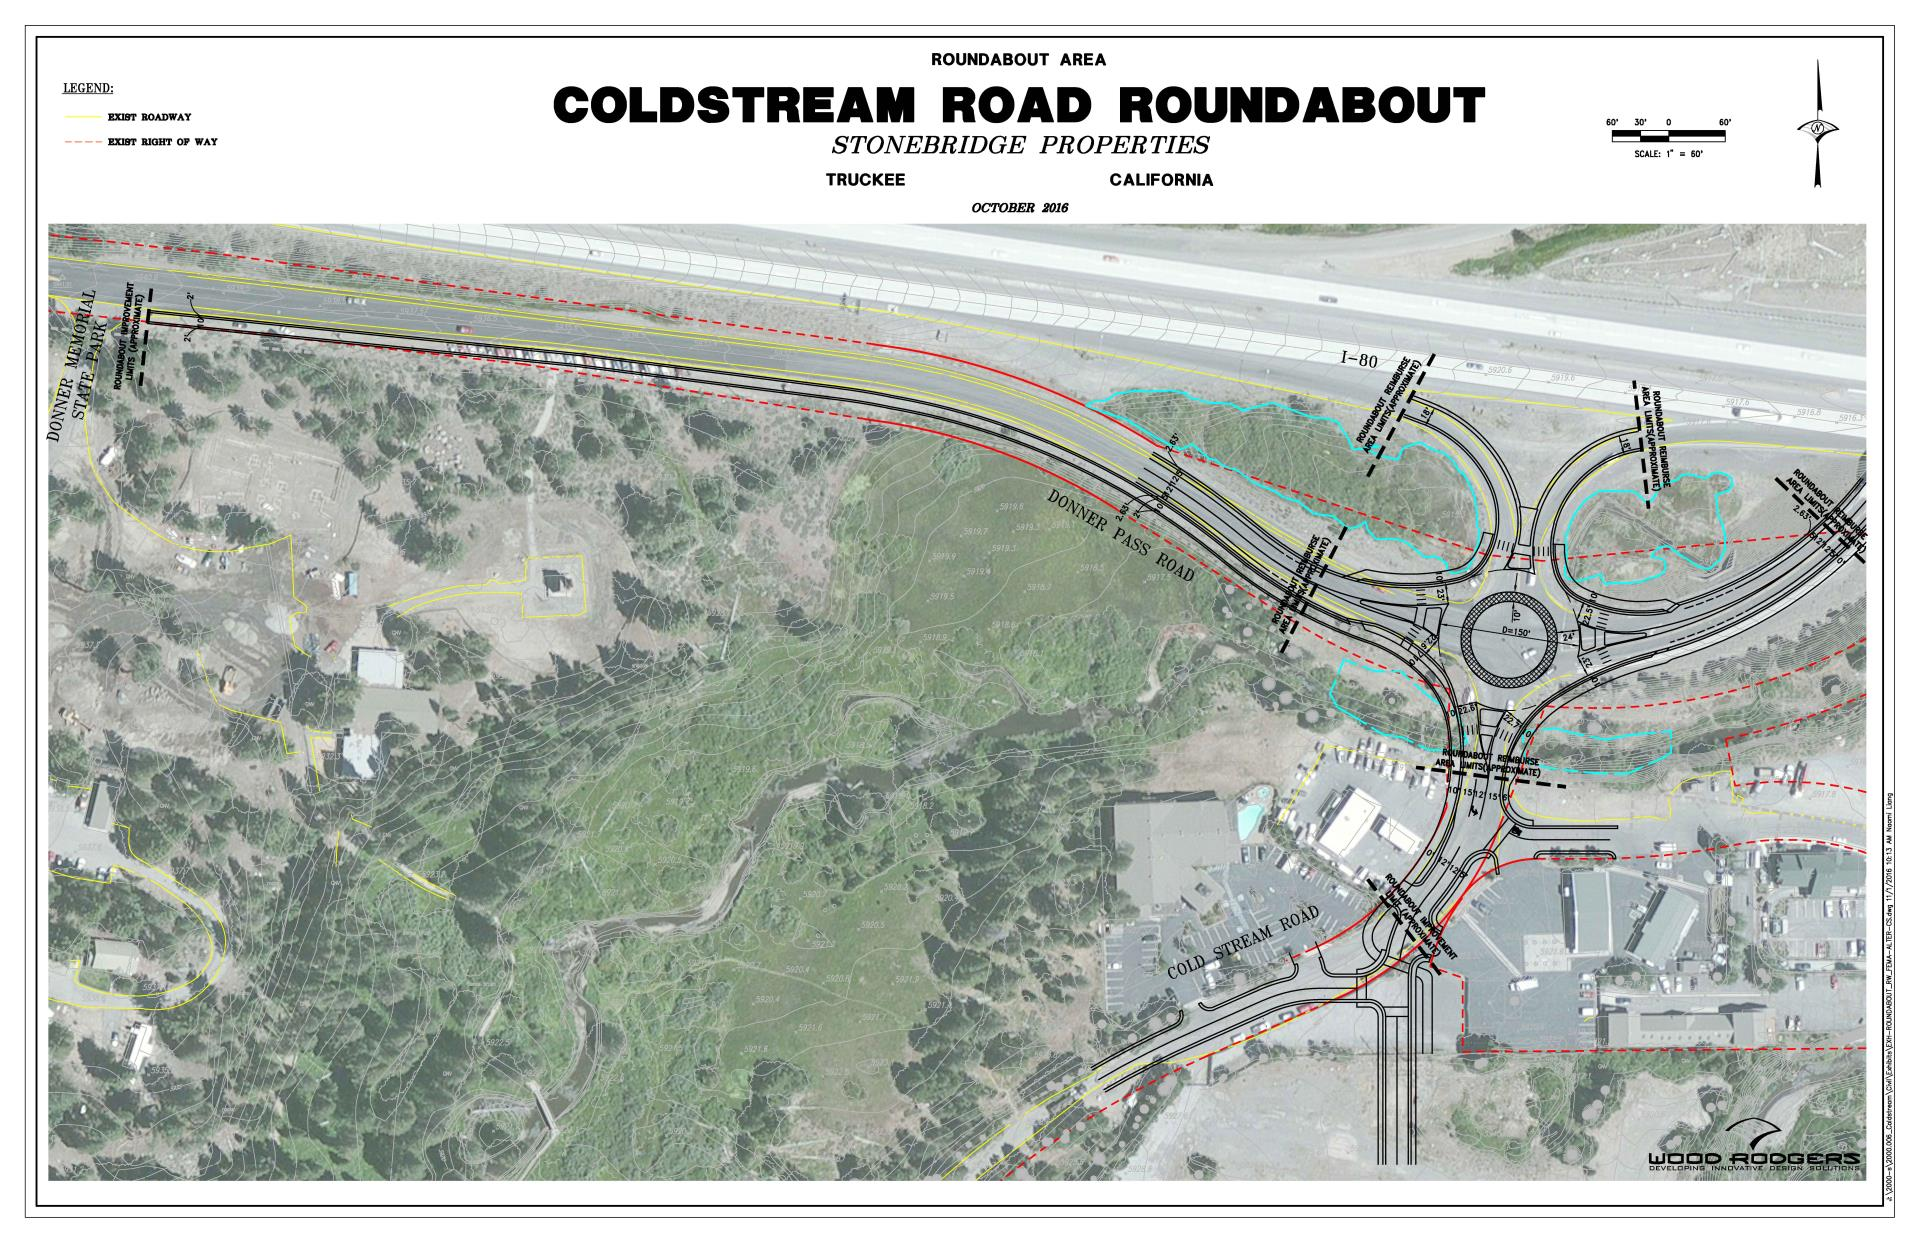 Coldstream Road Roundabout Exhibit_2016-11-01